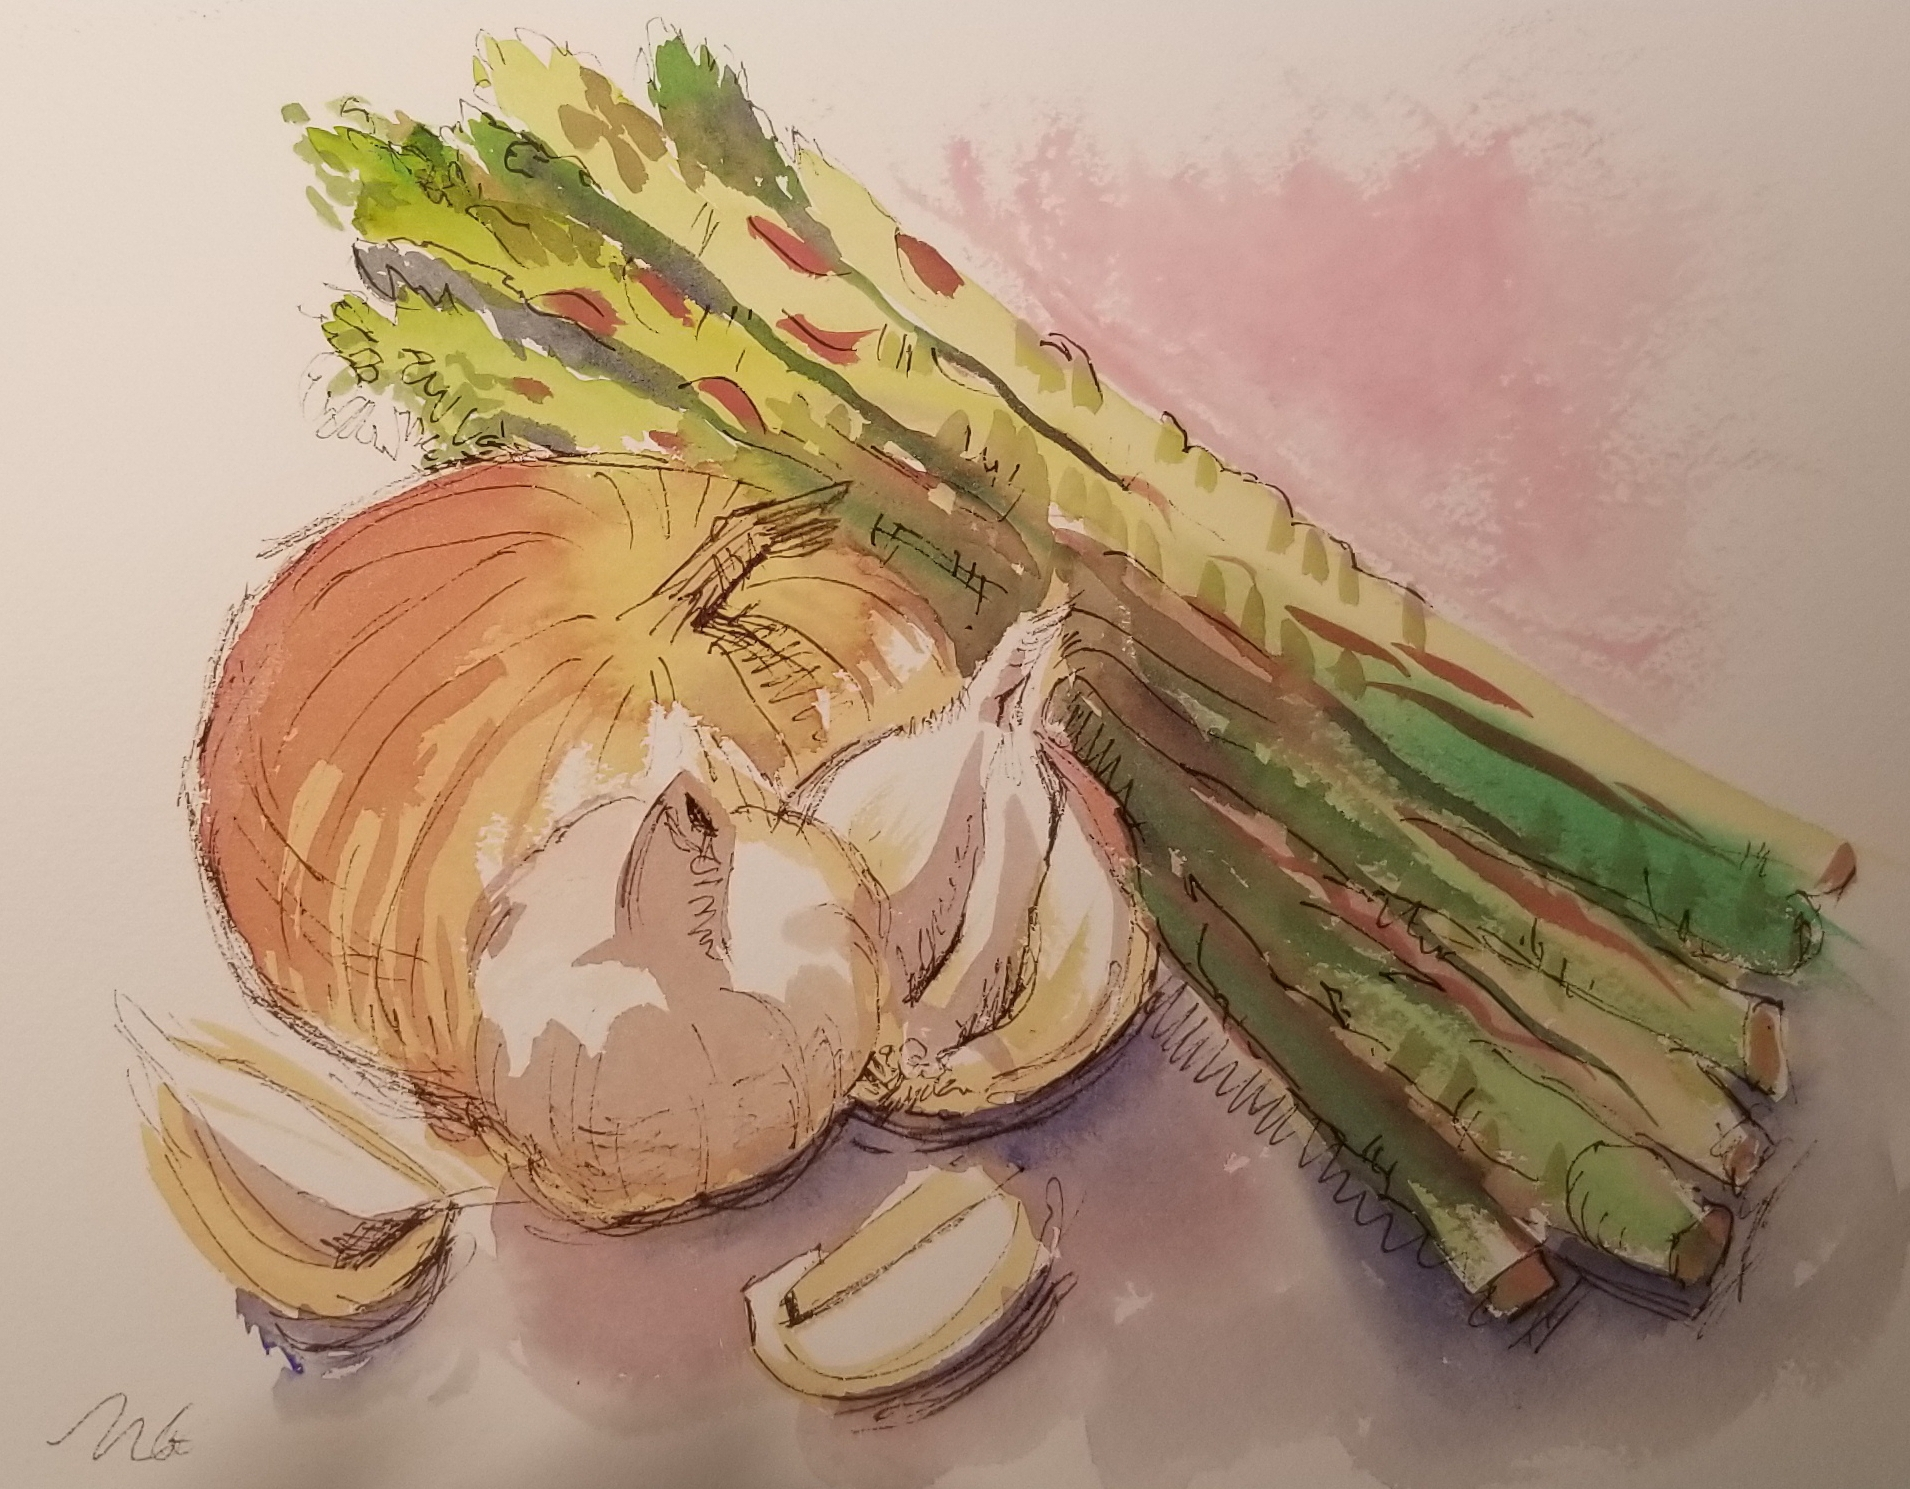 Onion and asparagus, watercolor sketch by Nancy Boyle.jpg